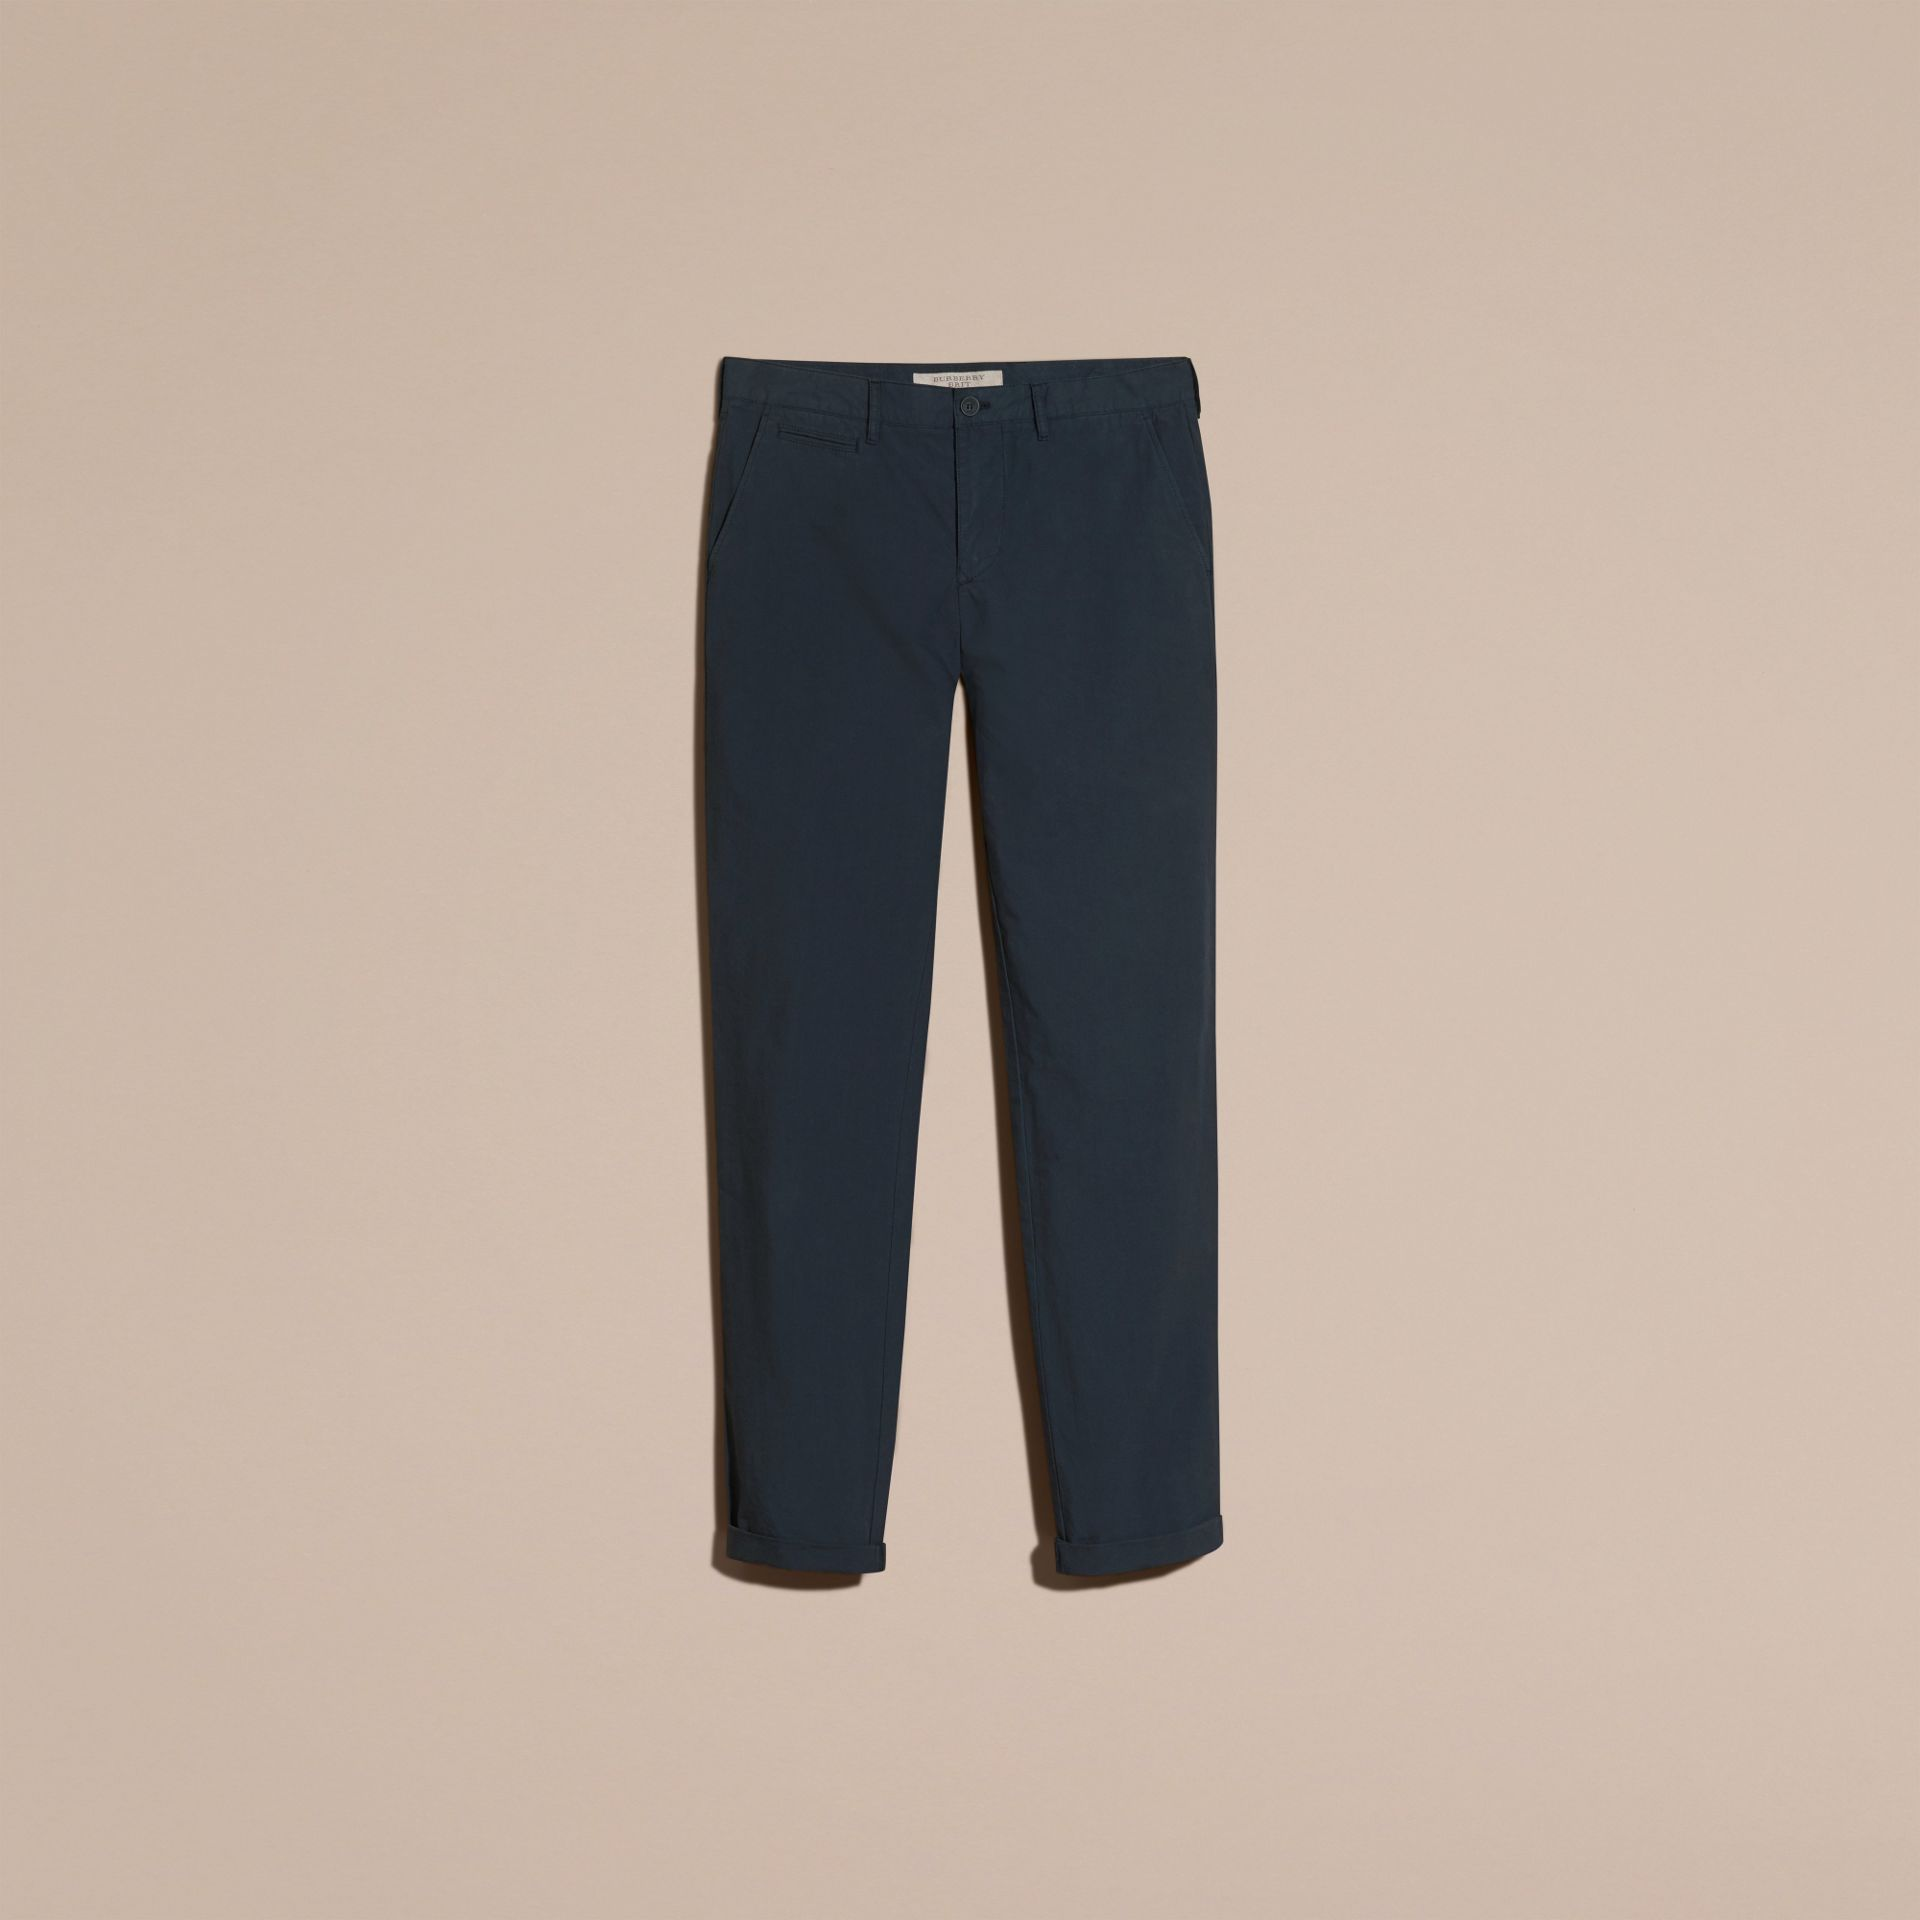 Slim Fit Cotton Poplin Chinos in Indigo - Men | Burberry - gallery image 4